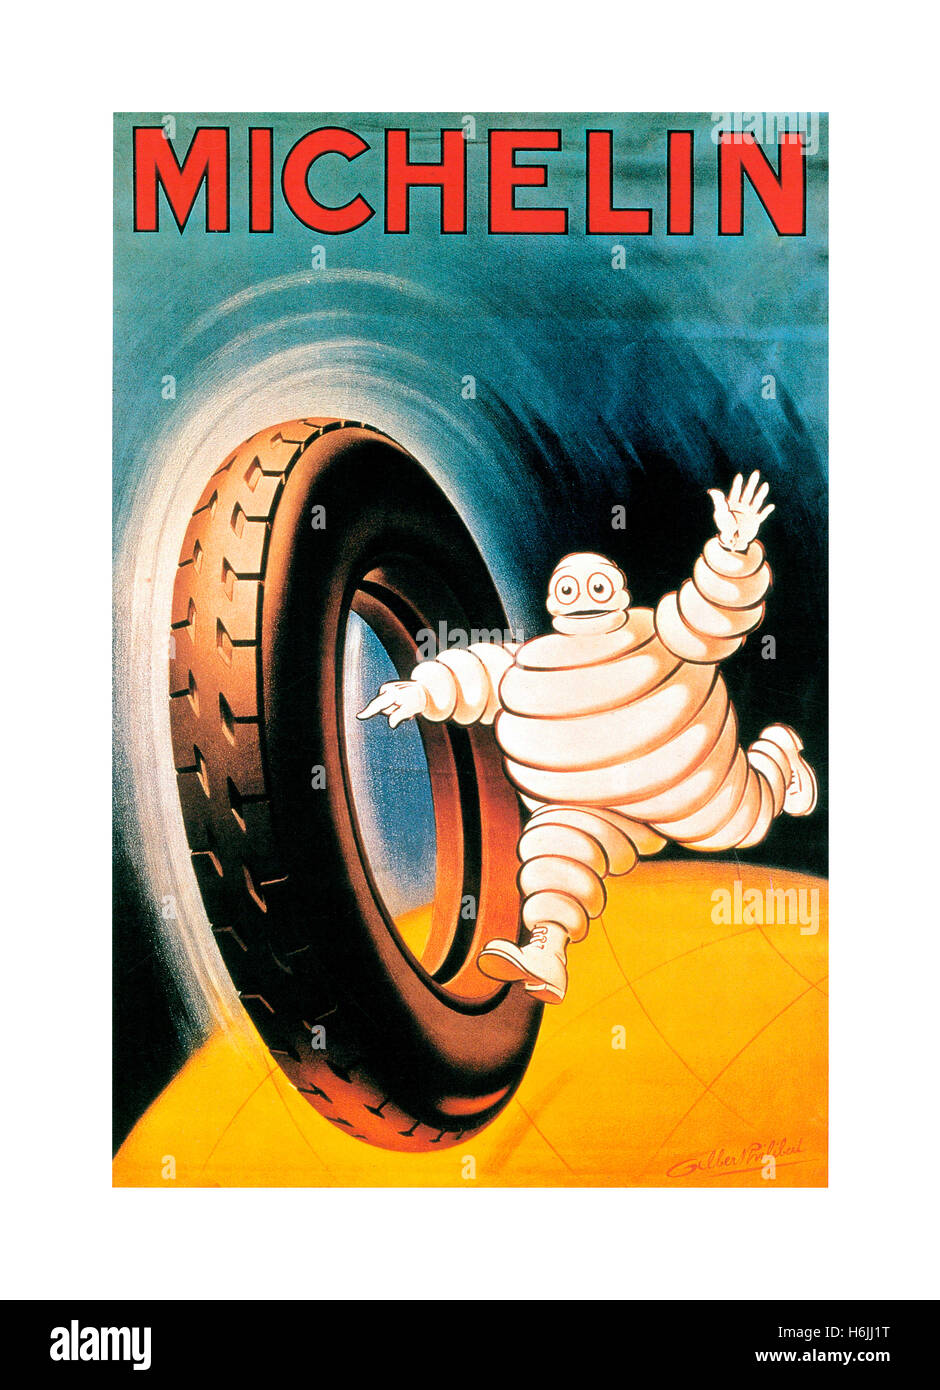 MICHELIN Vintage 1900's poster for Michelin tyres with Michelin Man 'Bibendum' running with car tyre - Stock Image